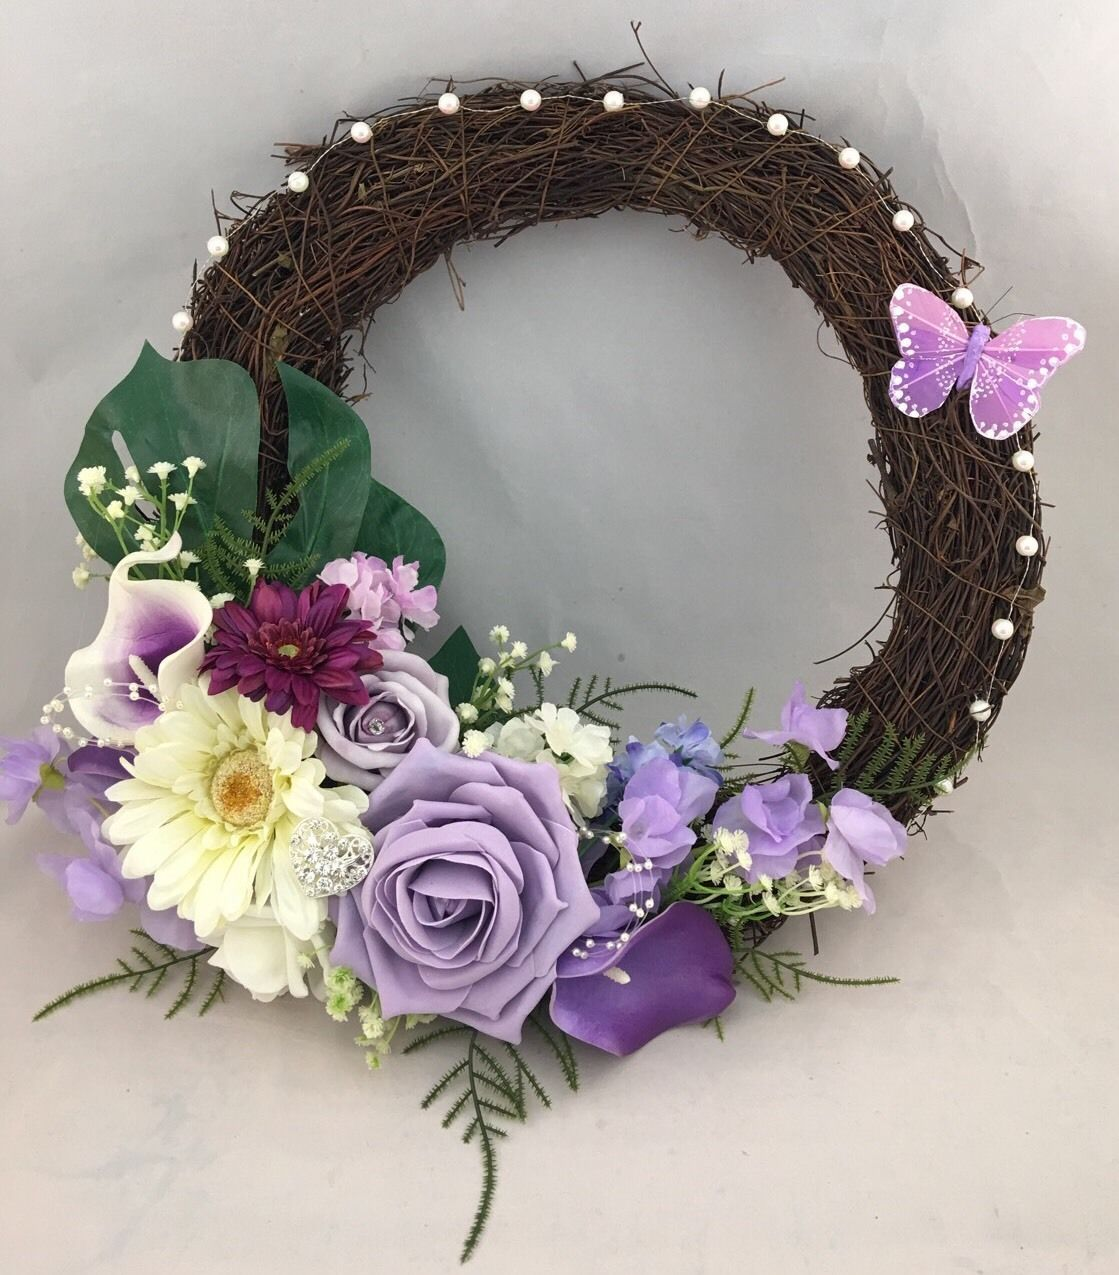 New FRONT DOOR VINTAGE TWIG WREATH FLOWERS BROOCHES PEARLS LILAC  IO11